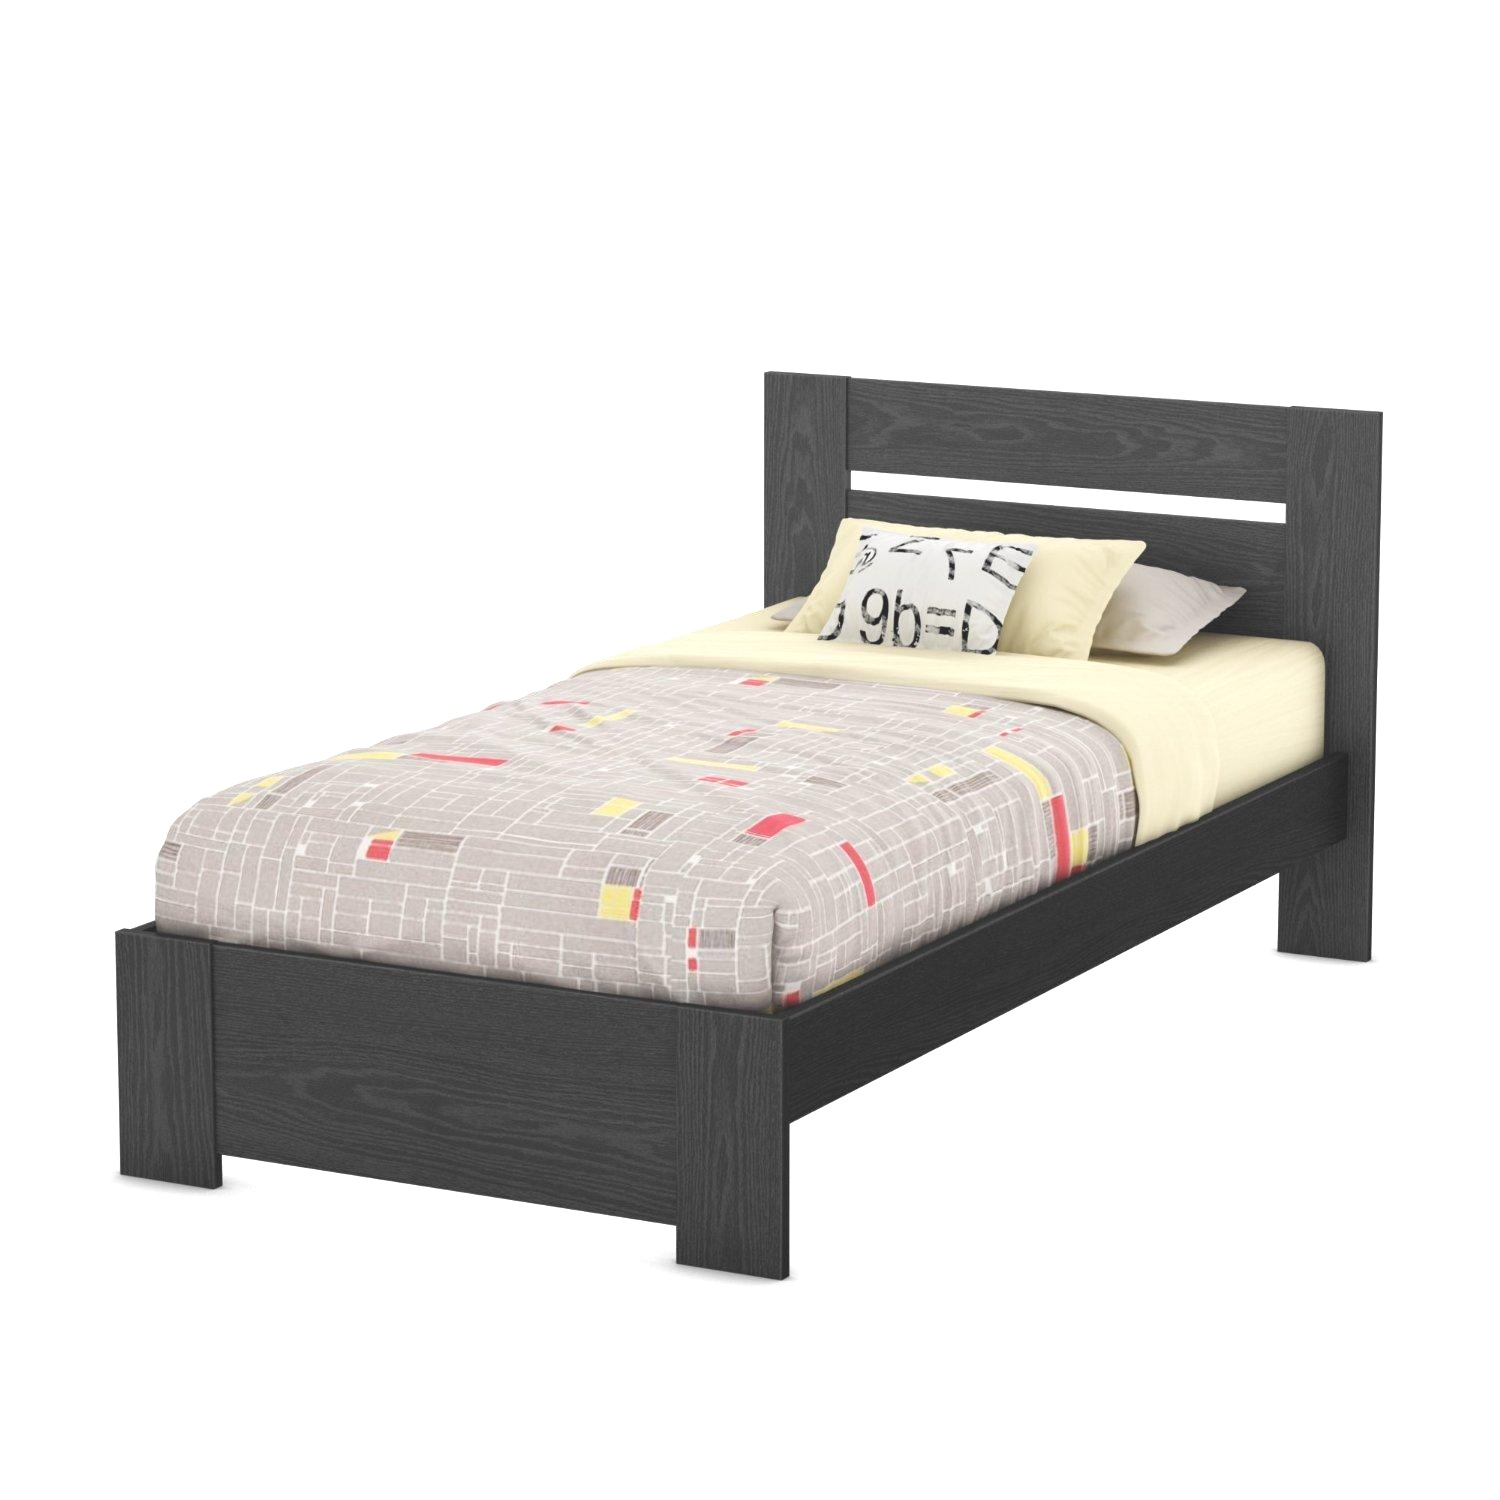 Twin Bed Frames For Sale Is So Famous But Roy Home Design